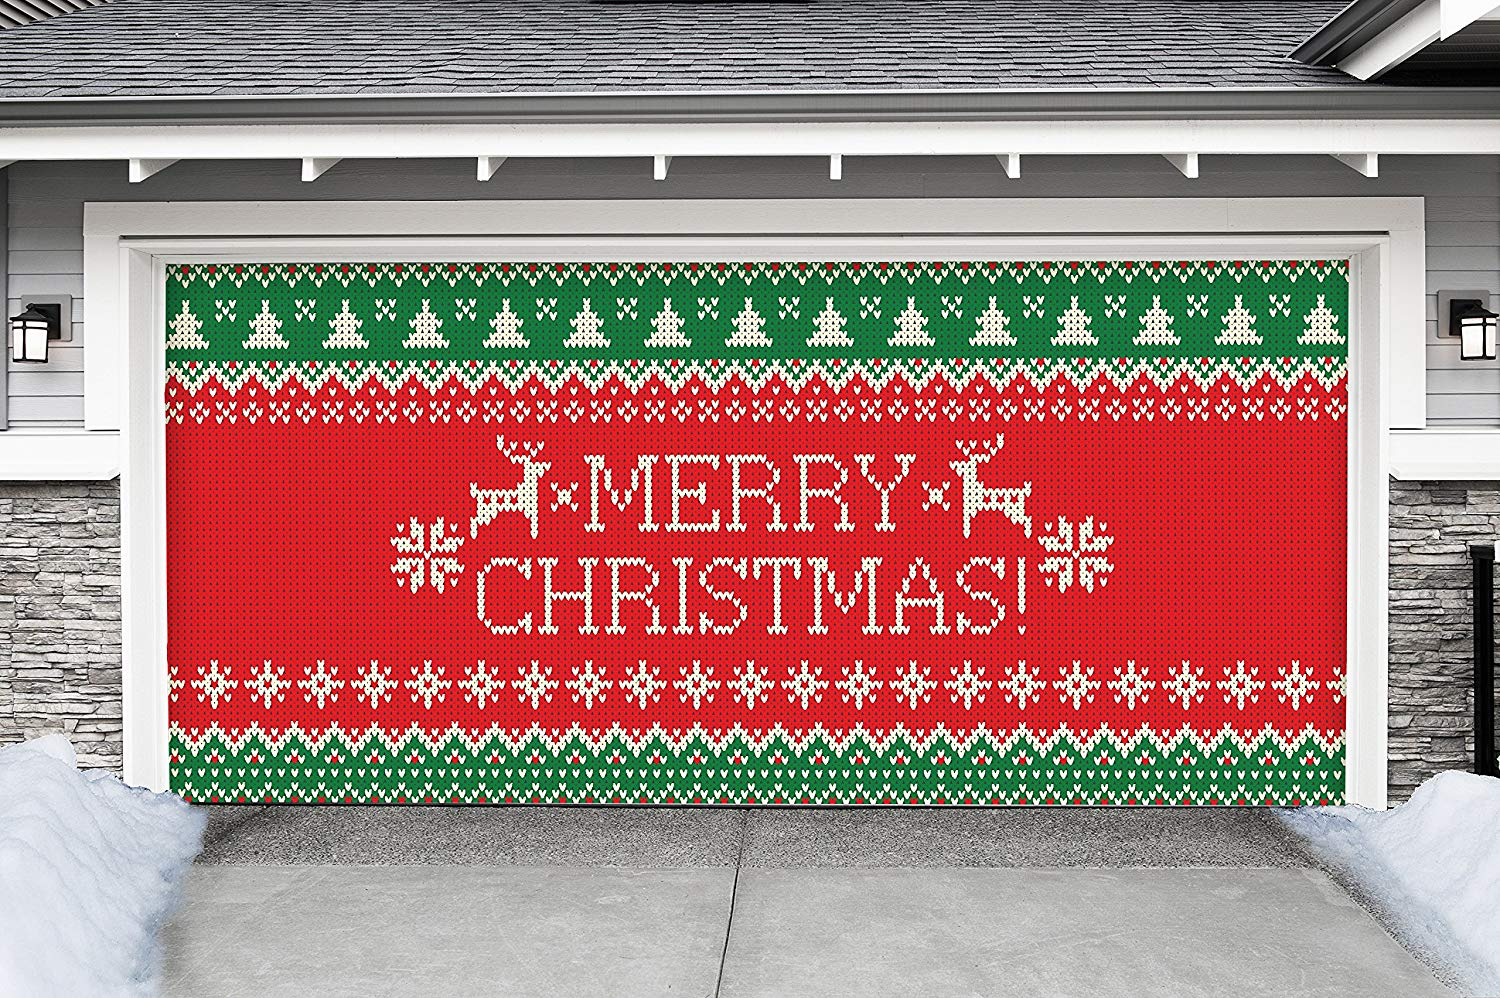 Victory Corps Outdoor Christmas Holiday Garage Door Banner Cover Mural Décoration - Ugly Christmas Sweater Merry Christmas - Outdoor Christmas Holiday Garage Door Banner Décor Sign 7'x16'